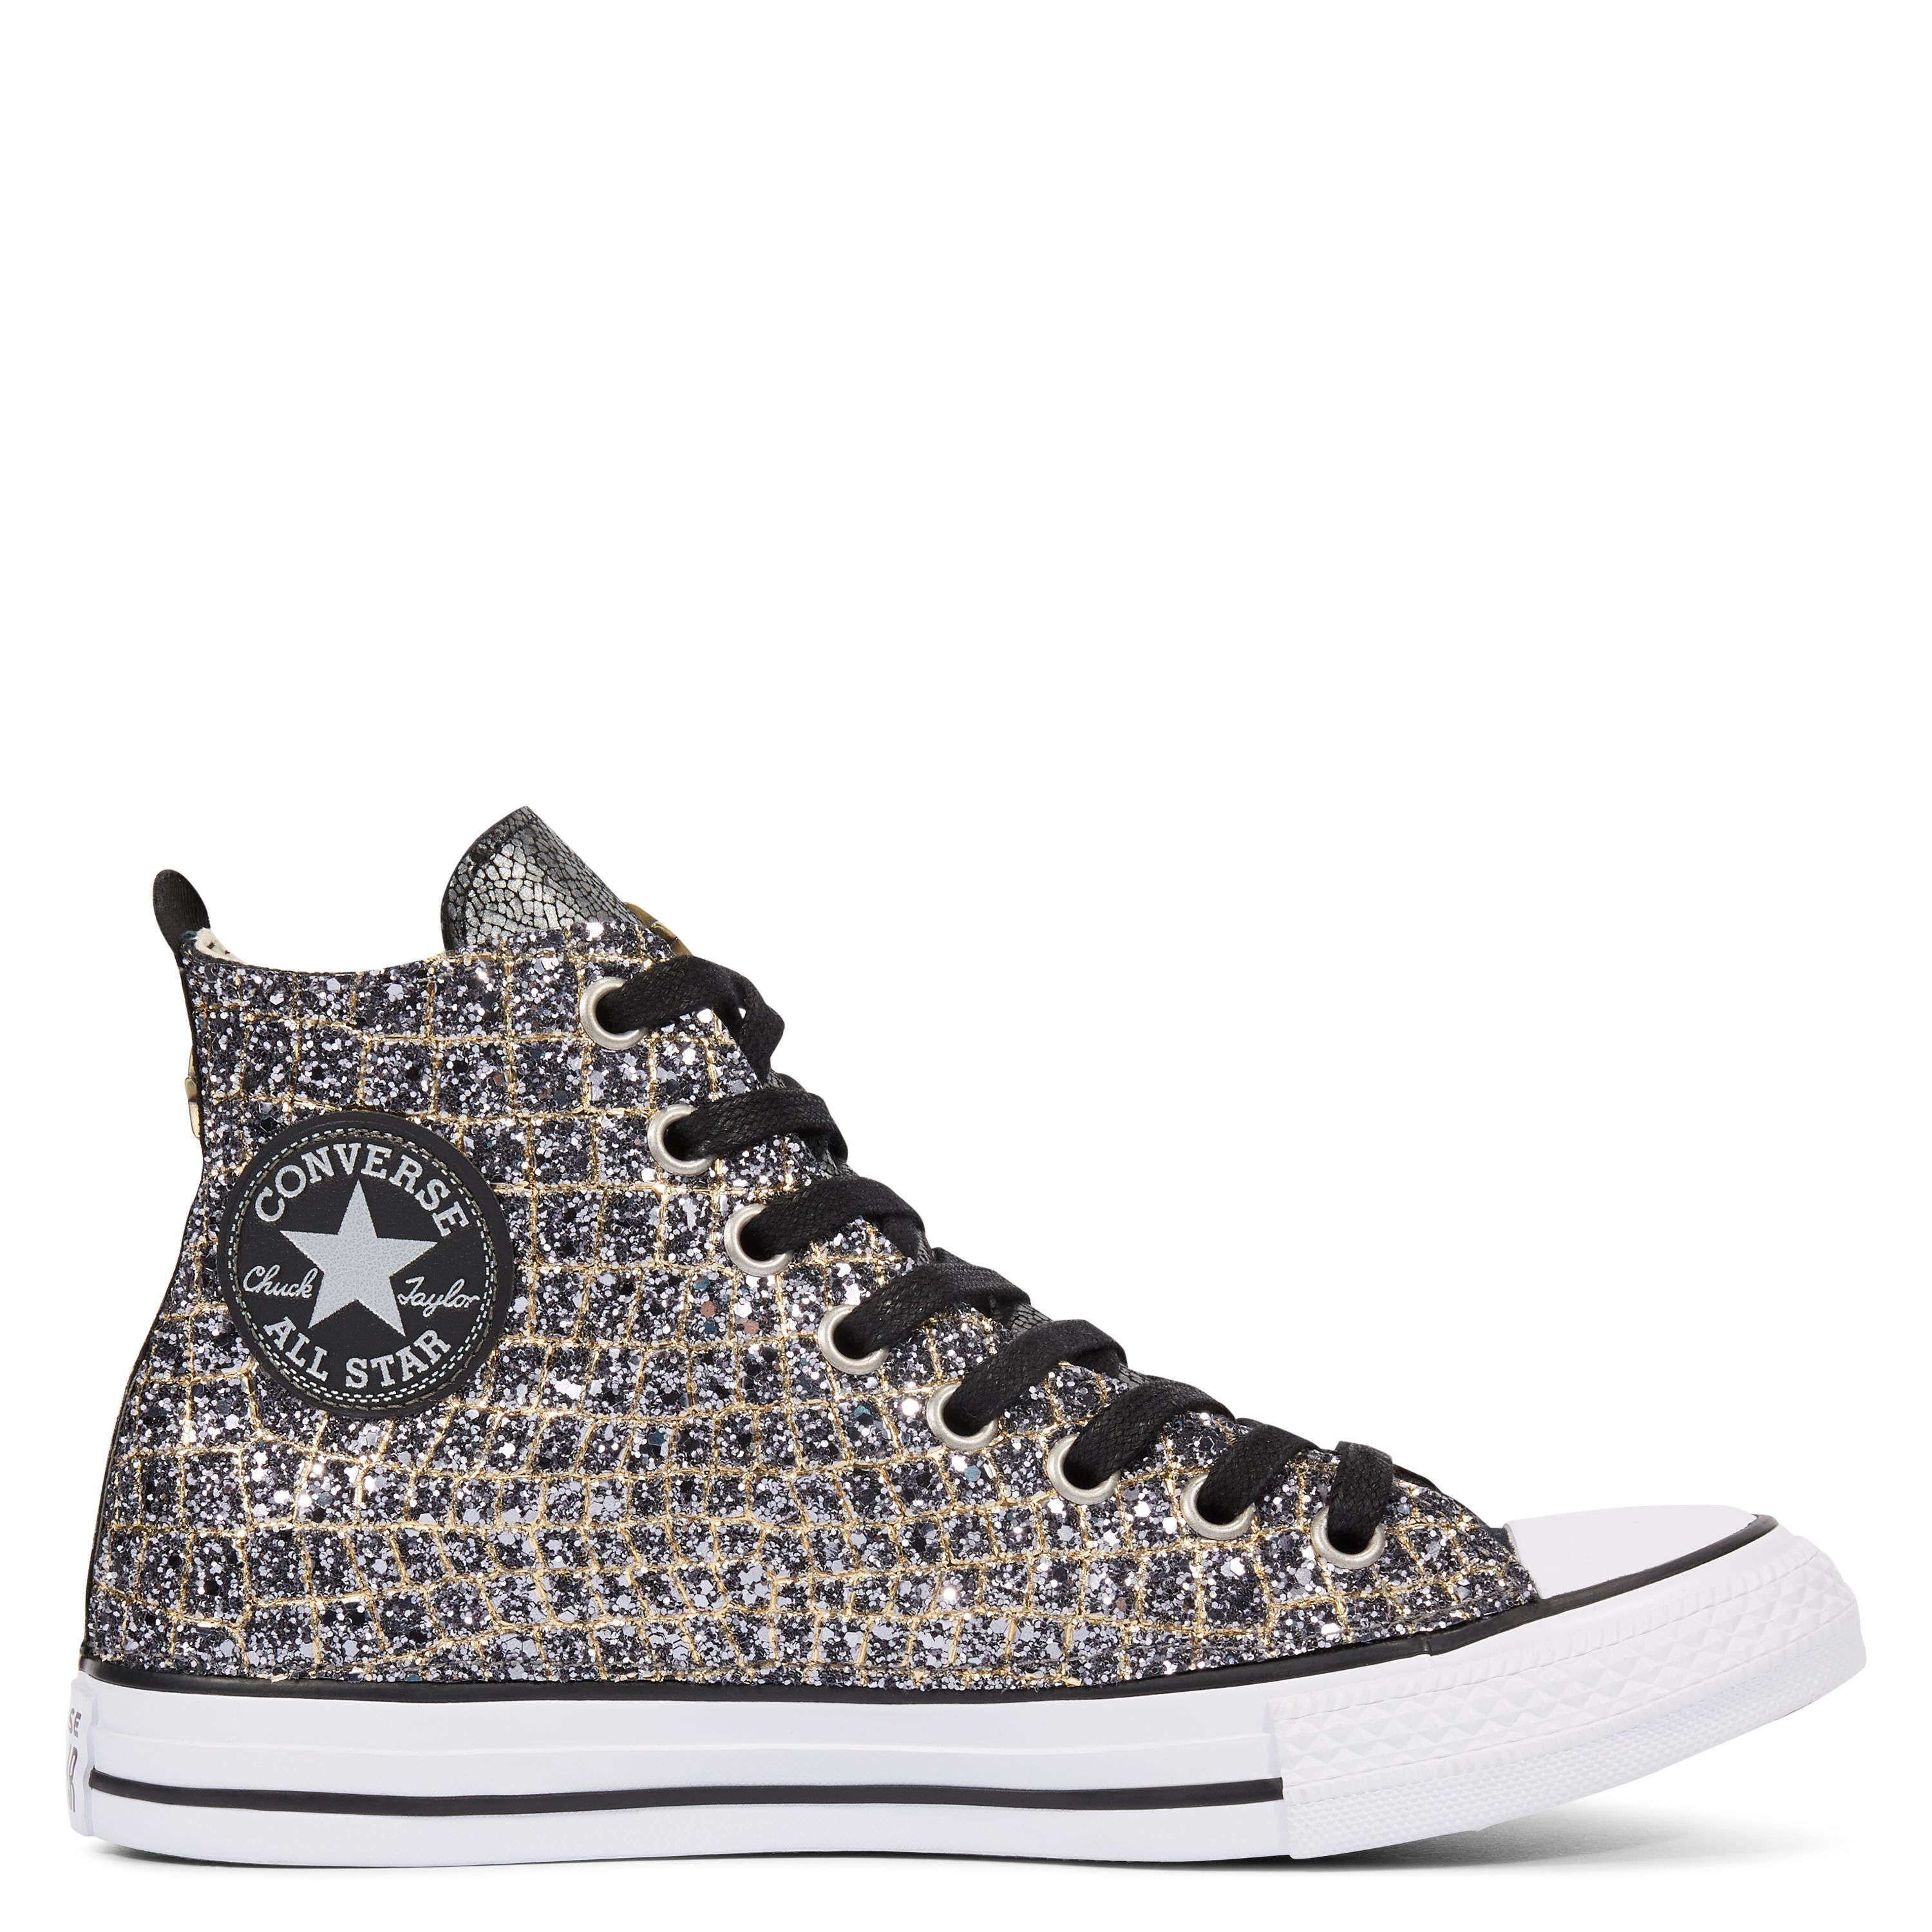 converse chucks Billig blau, CONVERSE JACK PURCELL Sneakers